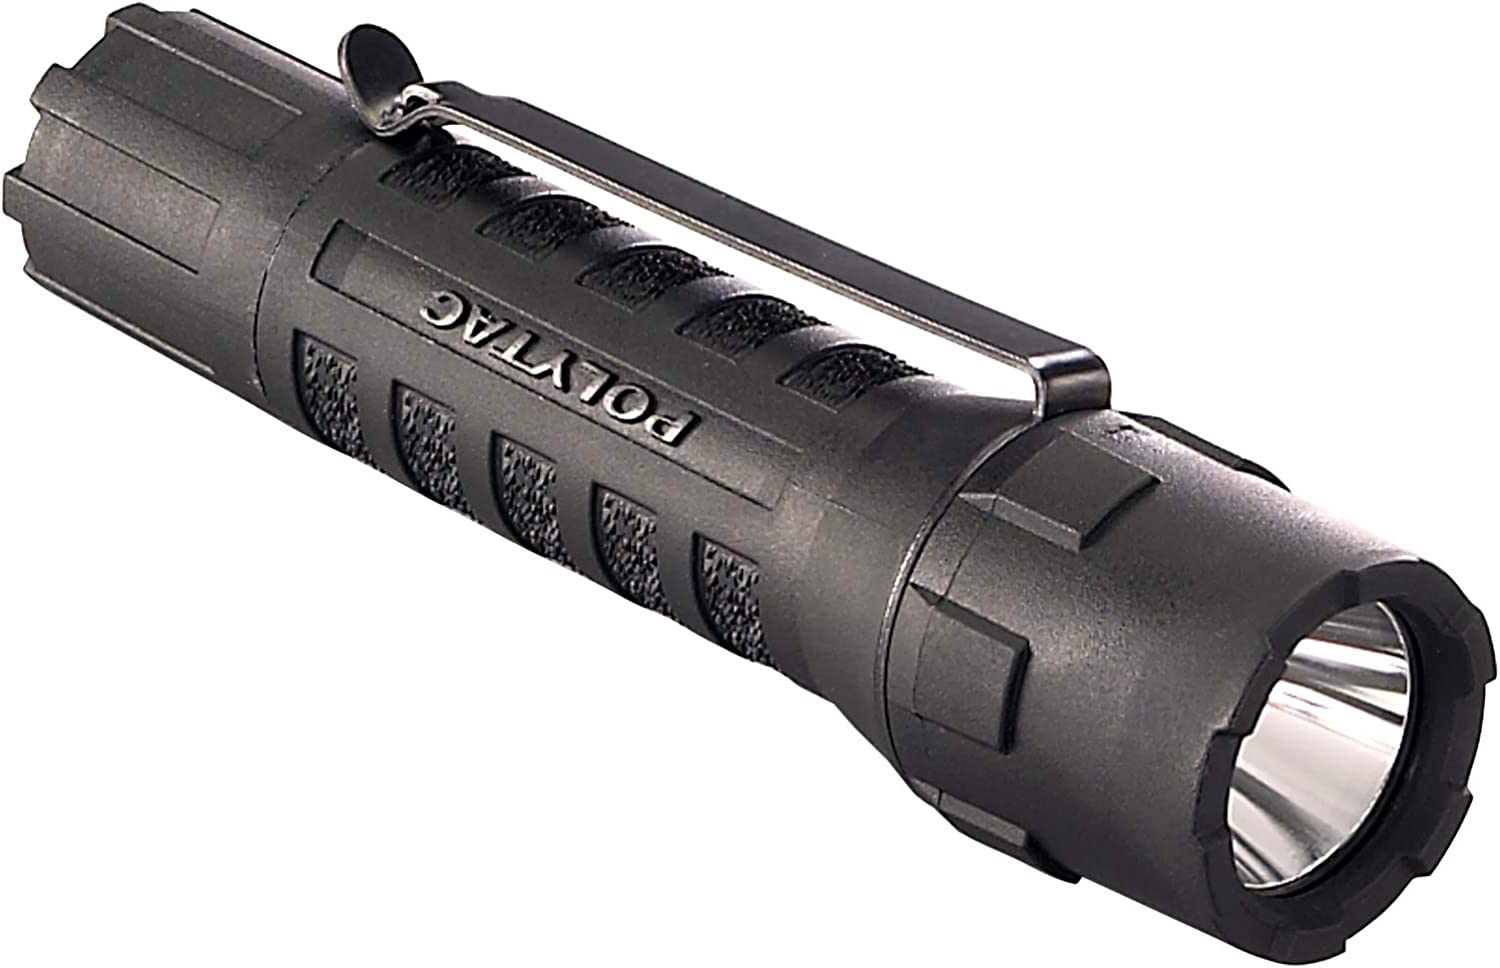 "This is an image of Steamlight pistol light with the word ""POLYMAC"" printed on its body."